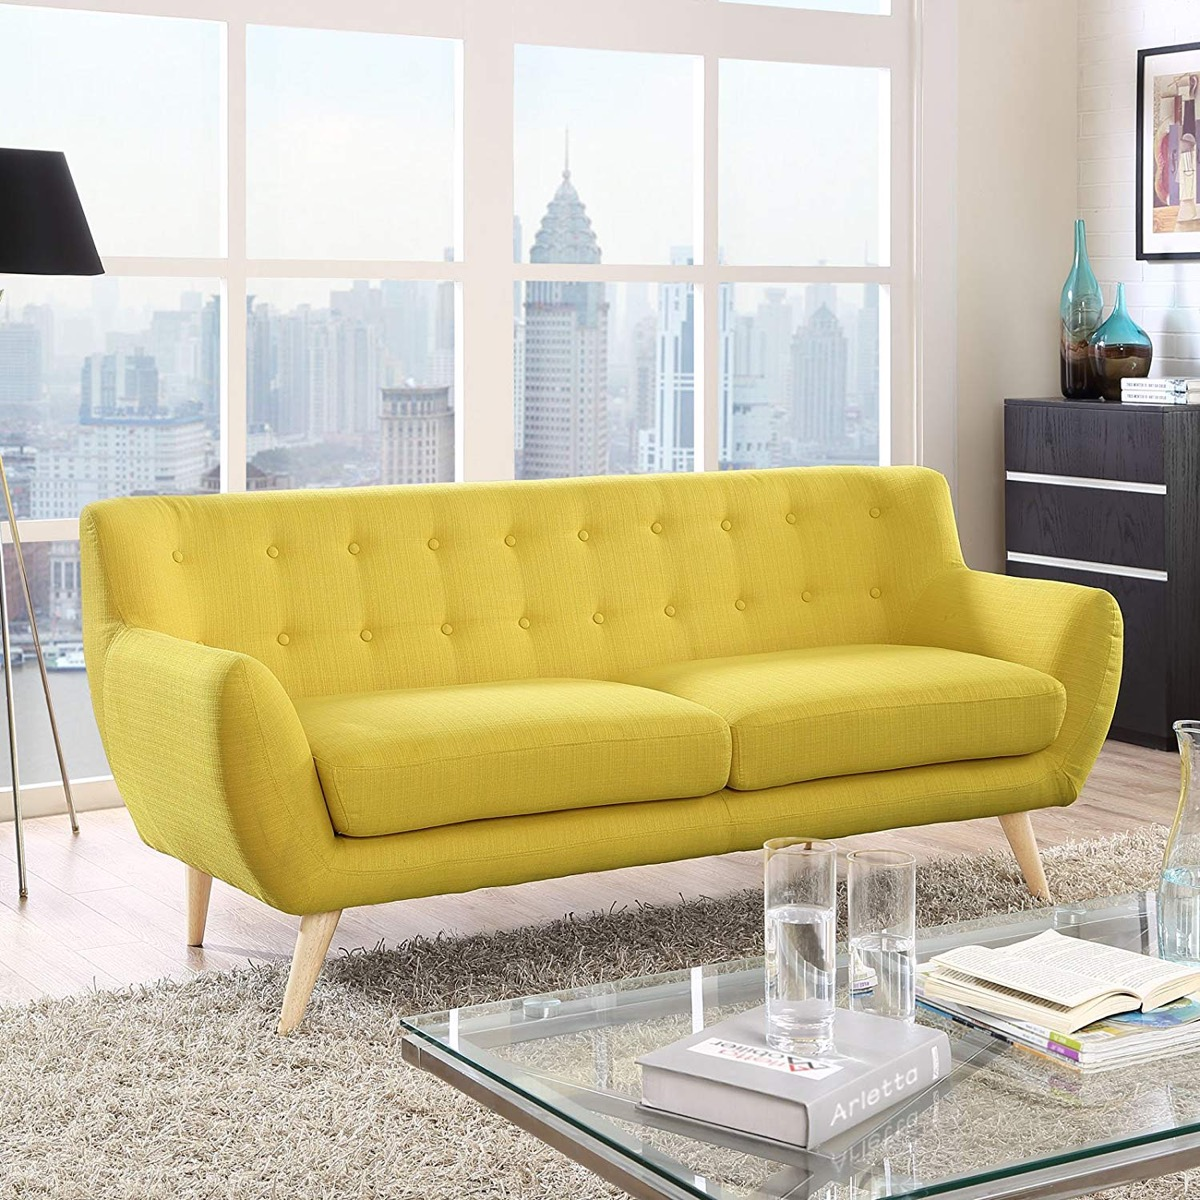 bright-yellow-mid-century-modern-sofa-statement-piece-inspiration